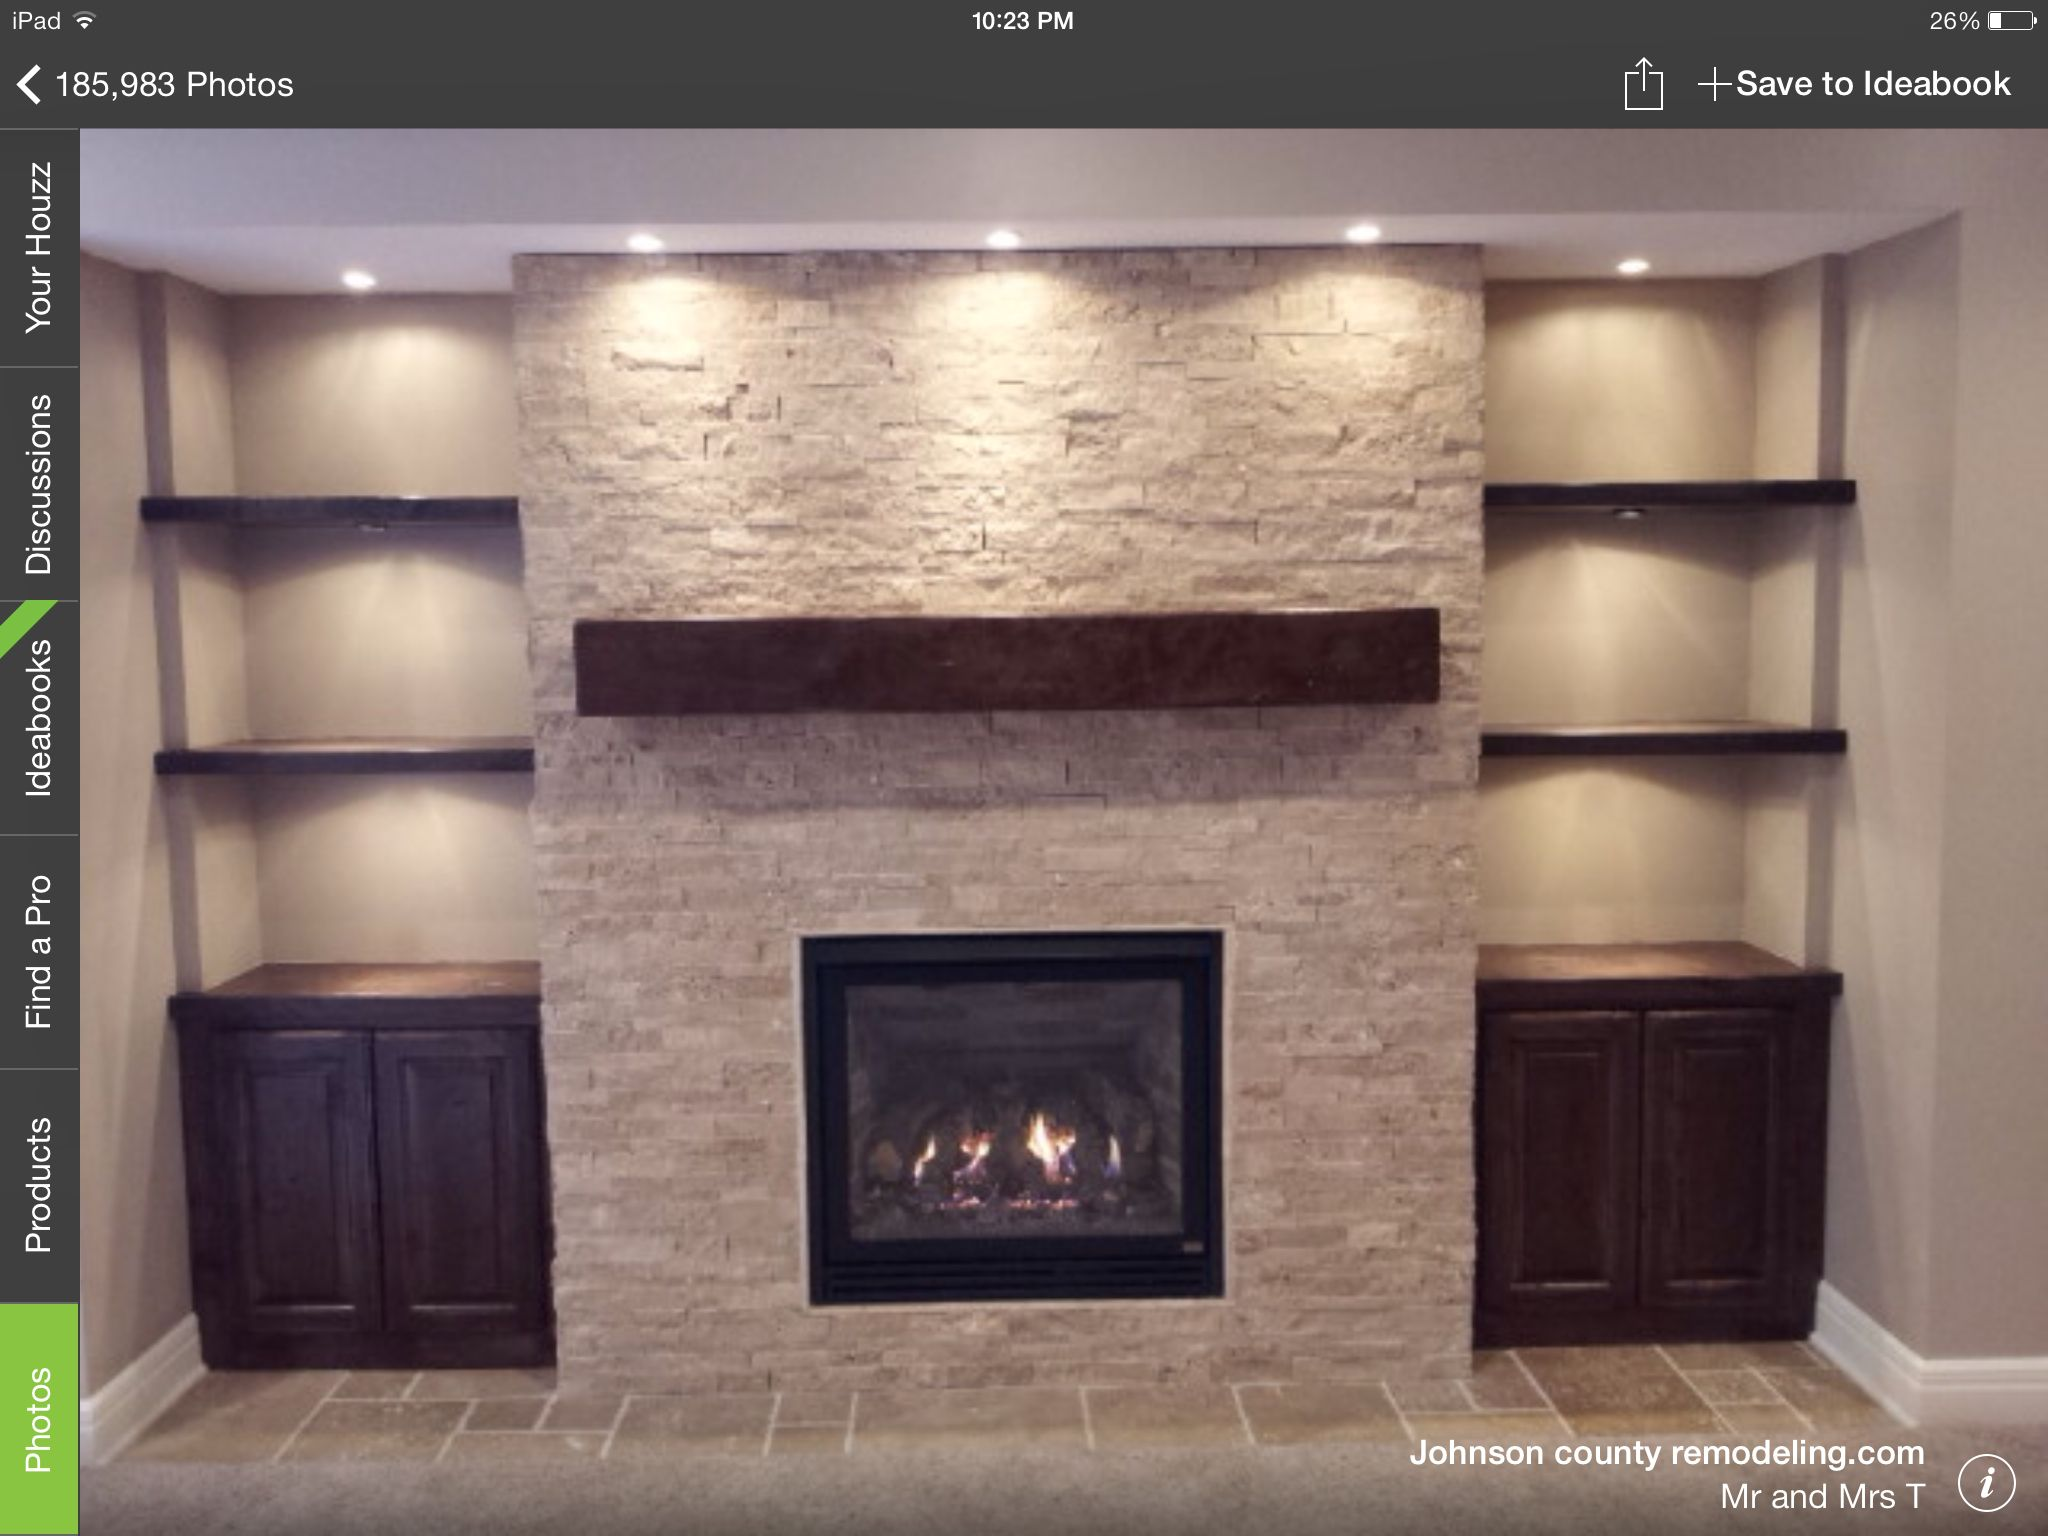 25 best stone tv wall images on pinterest | basement ideas